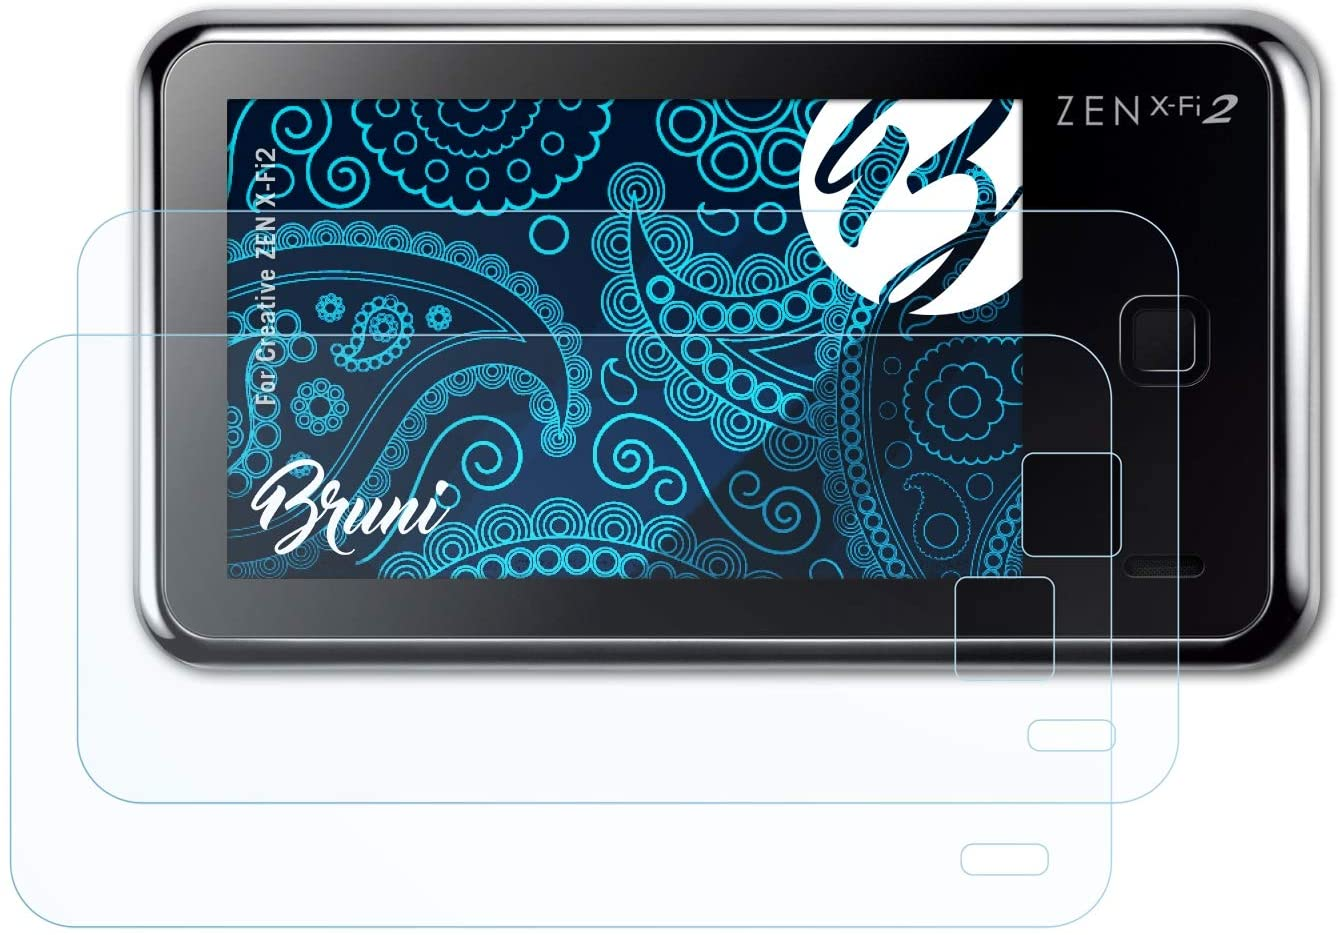 low-pricing Bruni Screen Protector shop Compatible with X-Fi2 Creative Protec Zen